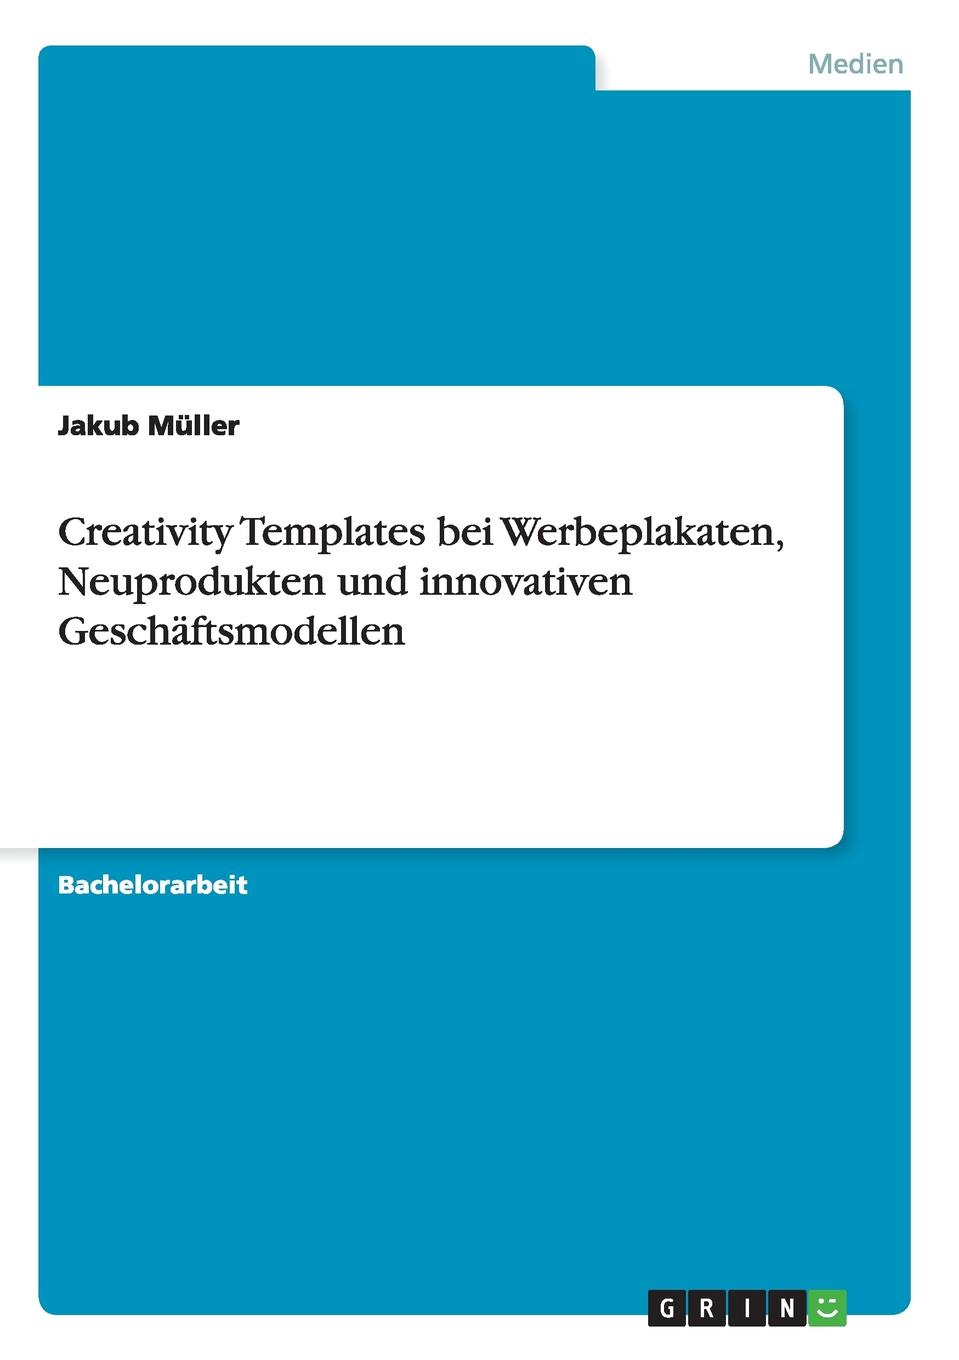 Jakub Müller Creativity Templates bei Werbeplakaten, Neuprodukten und innovativen Geschaftsmodellen front left front right side version 2 pins 7702127213 7701039565 door lock actuator for renault 19 clio i ii megane scenic